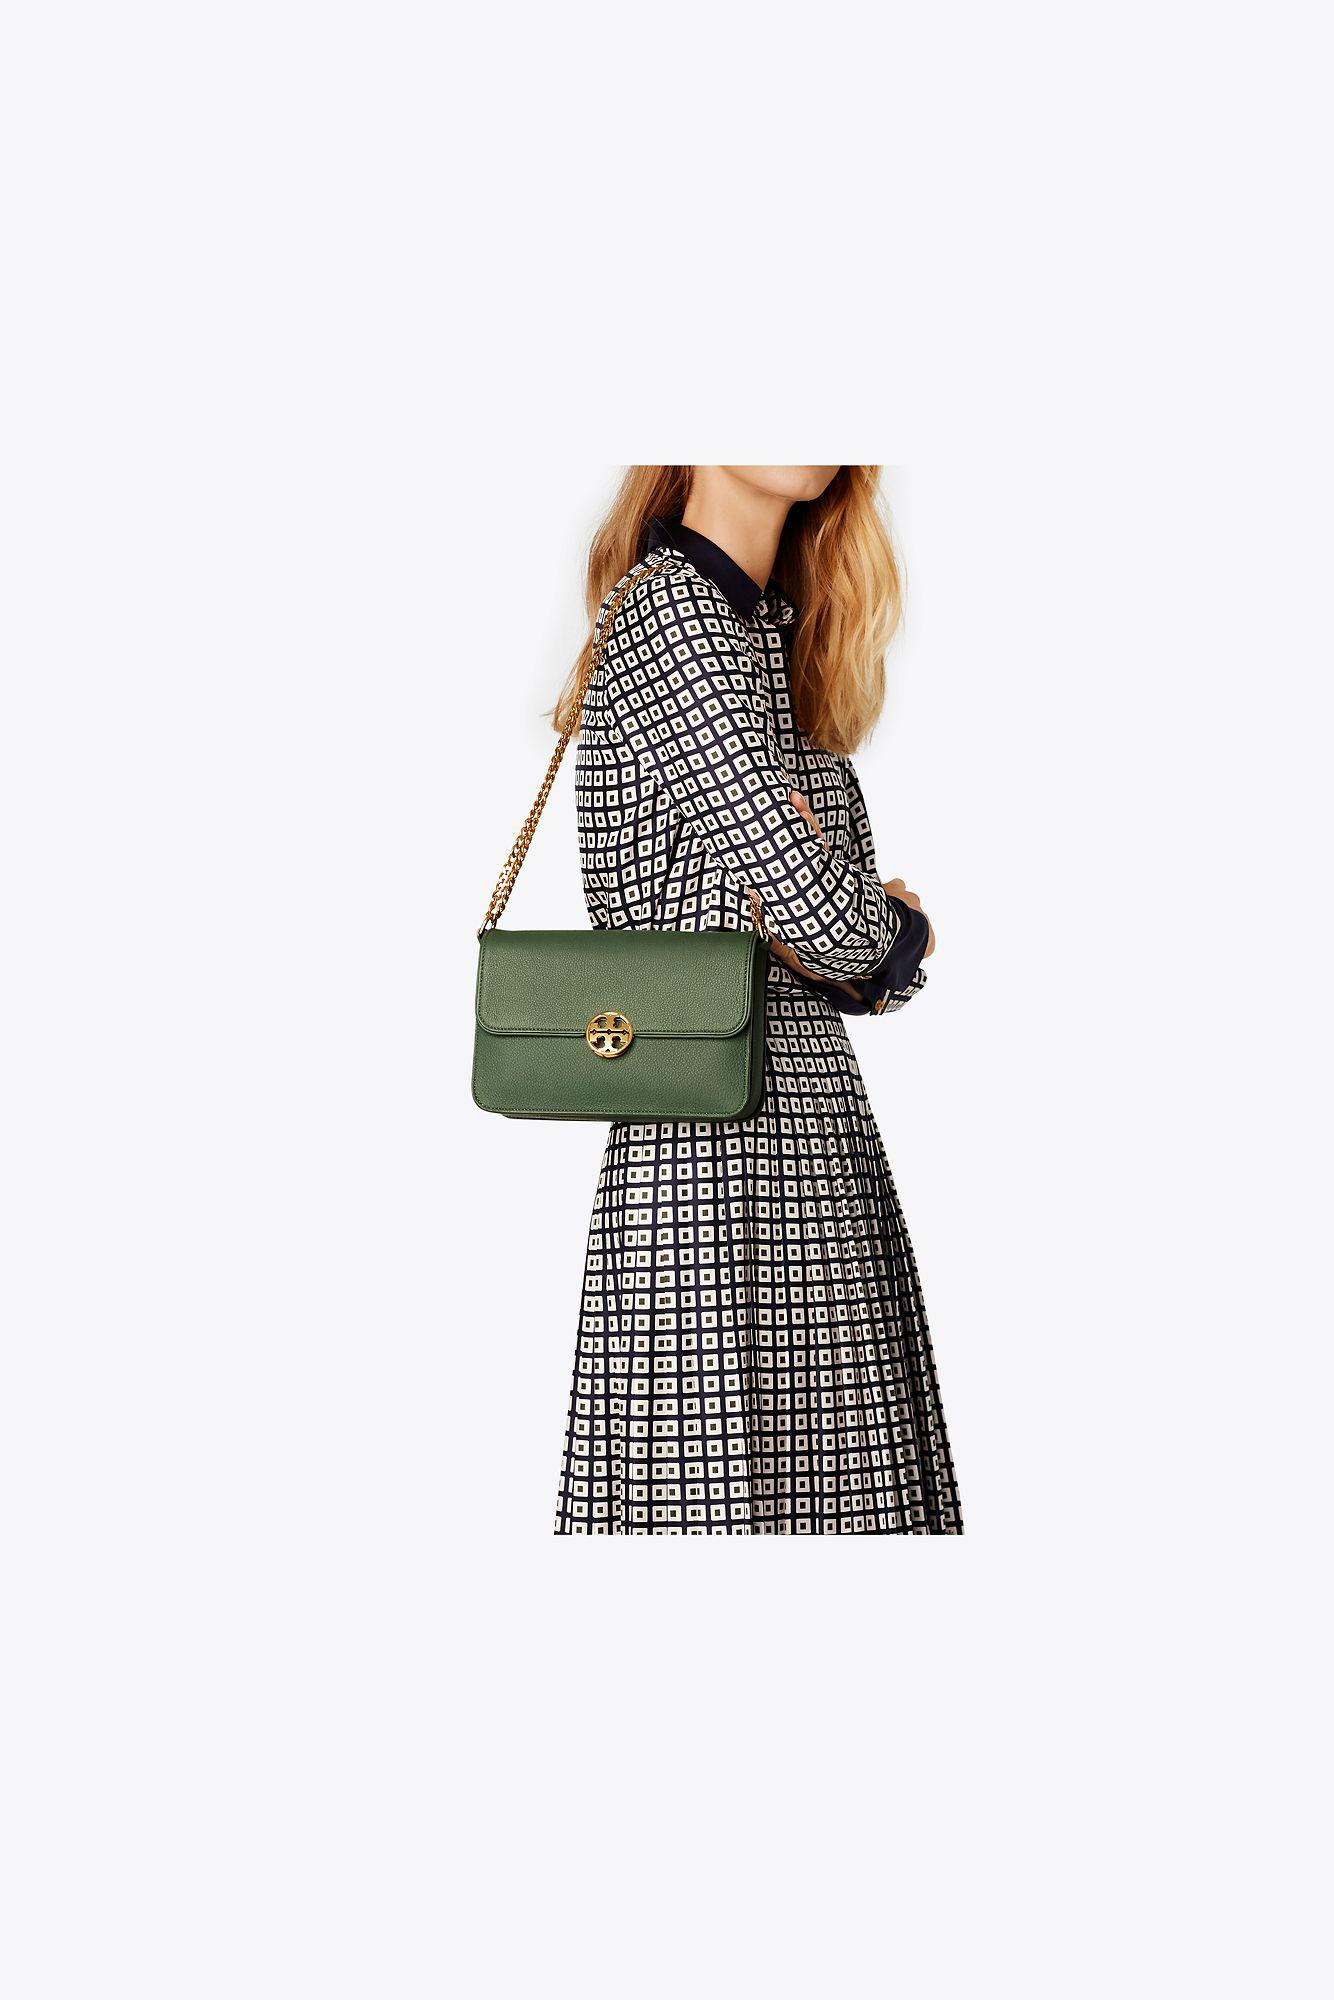 5e15b3241471 Lyst - Tory Burch Chelsea Shoulder Bag in Green